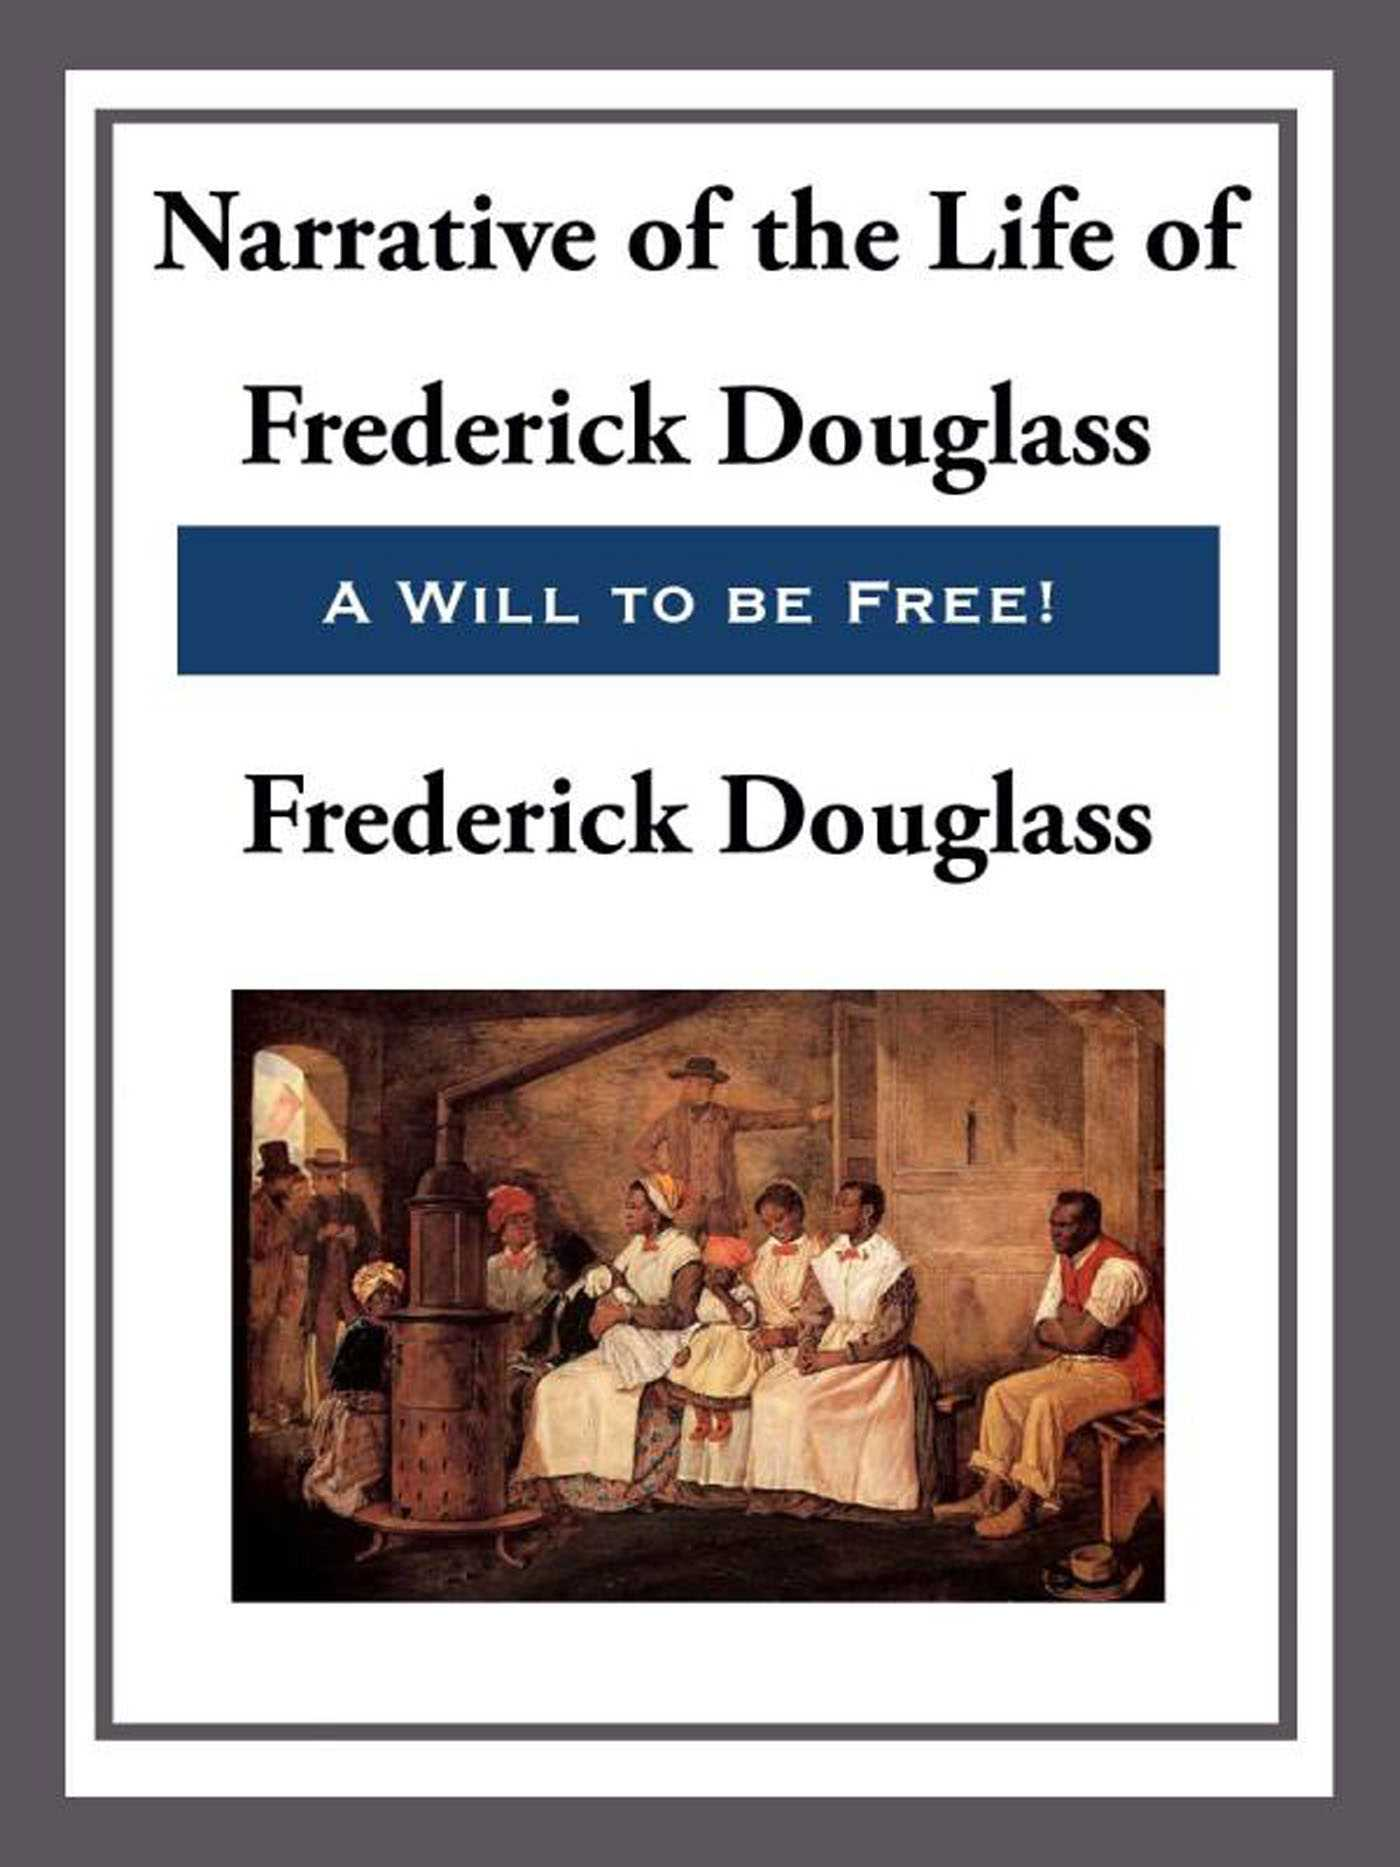 the subject of slavery in the narrative of the life of frederick douglass an american slave Haydn james just wrote the following to me after he read one of the books from the recommended reading section of this blog, a narrative of the life of frederick douglass, an american slave.